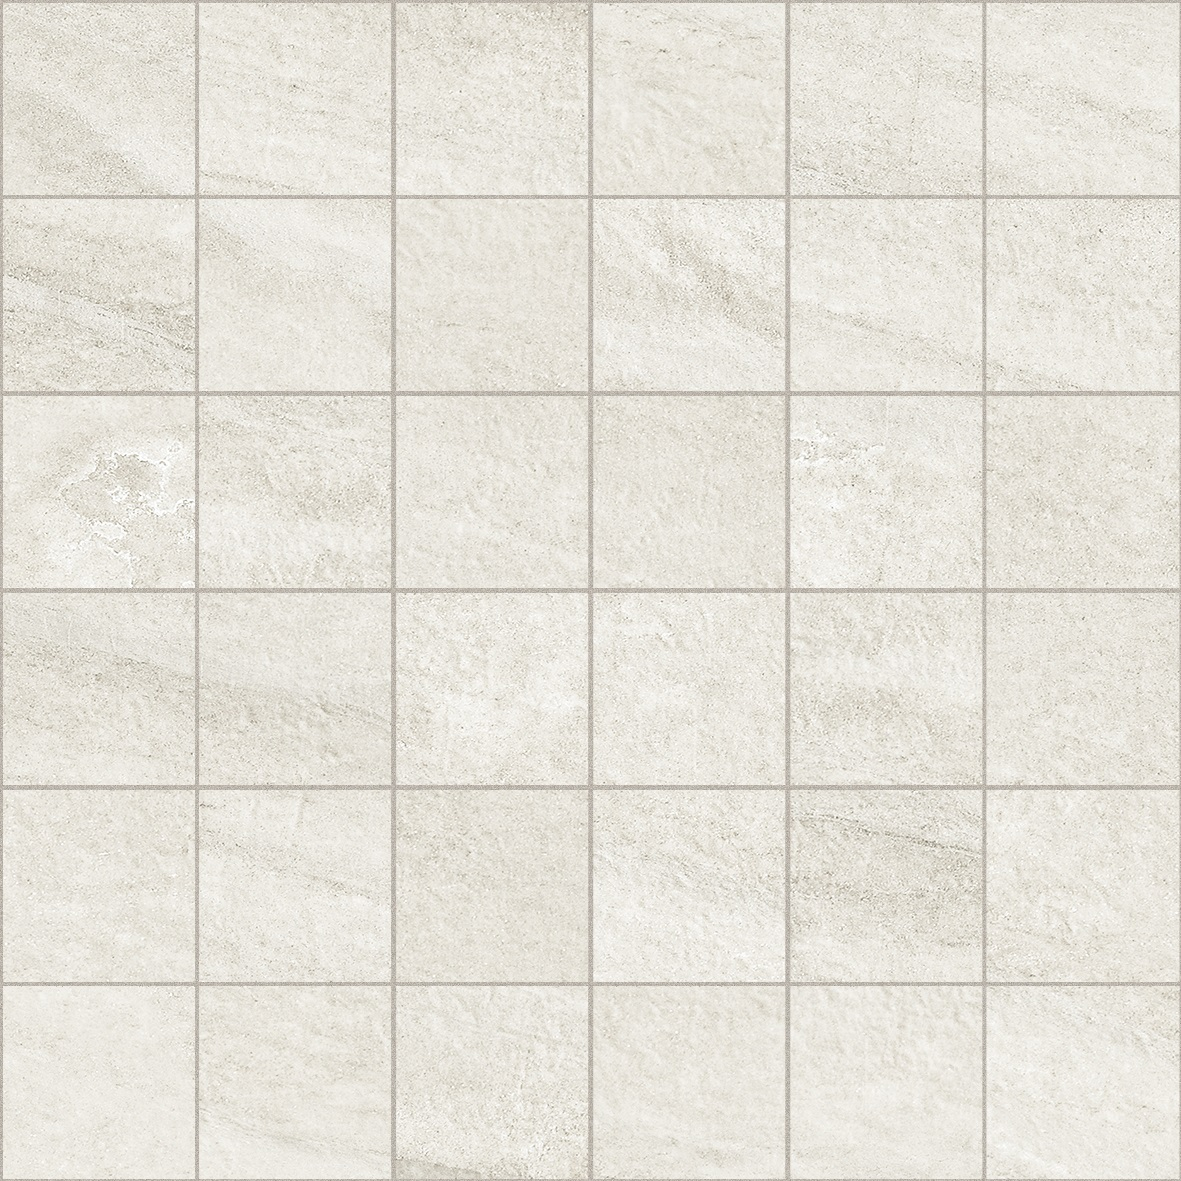 Floor Tiles Collection FC235 River Blanco 300mm x 300mm Malla Mosaic